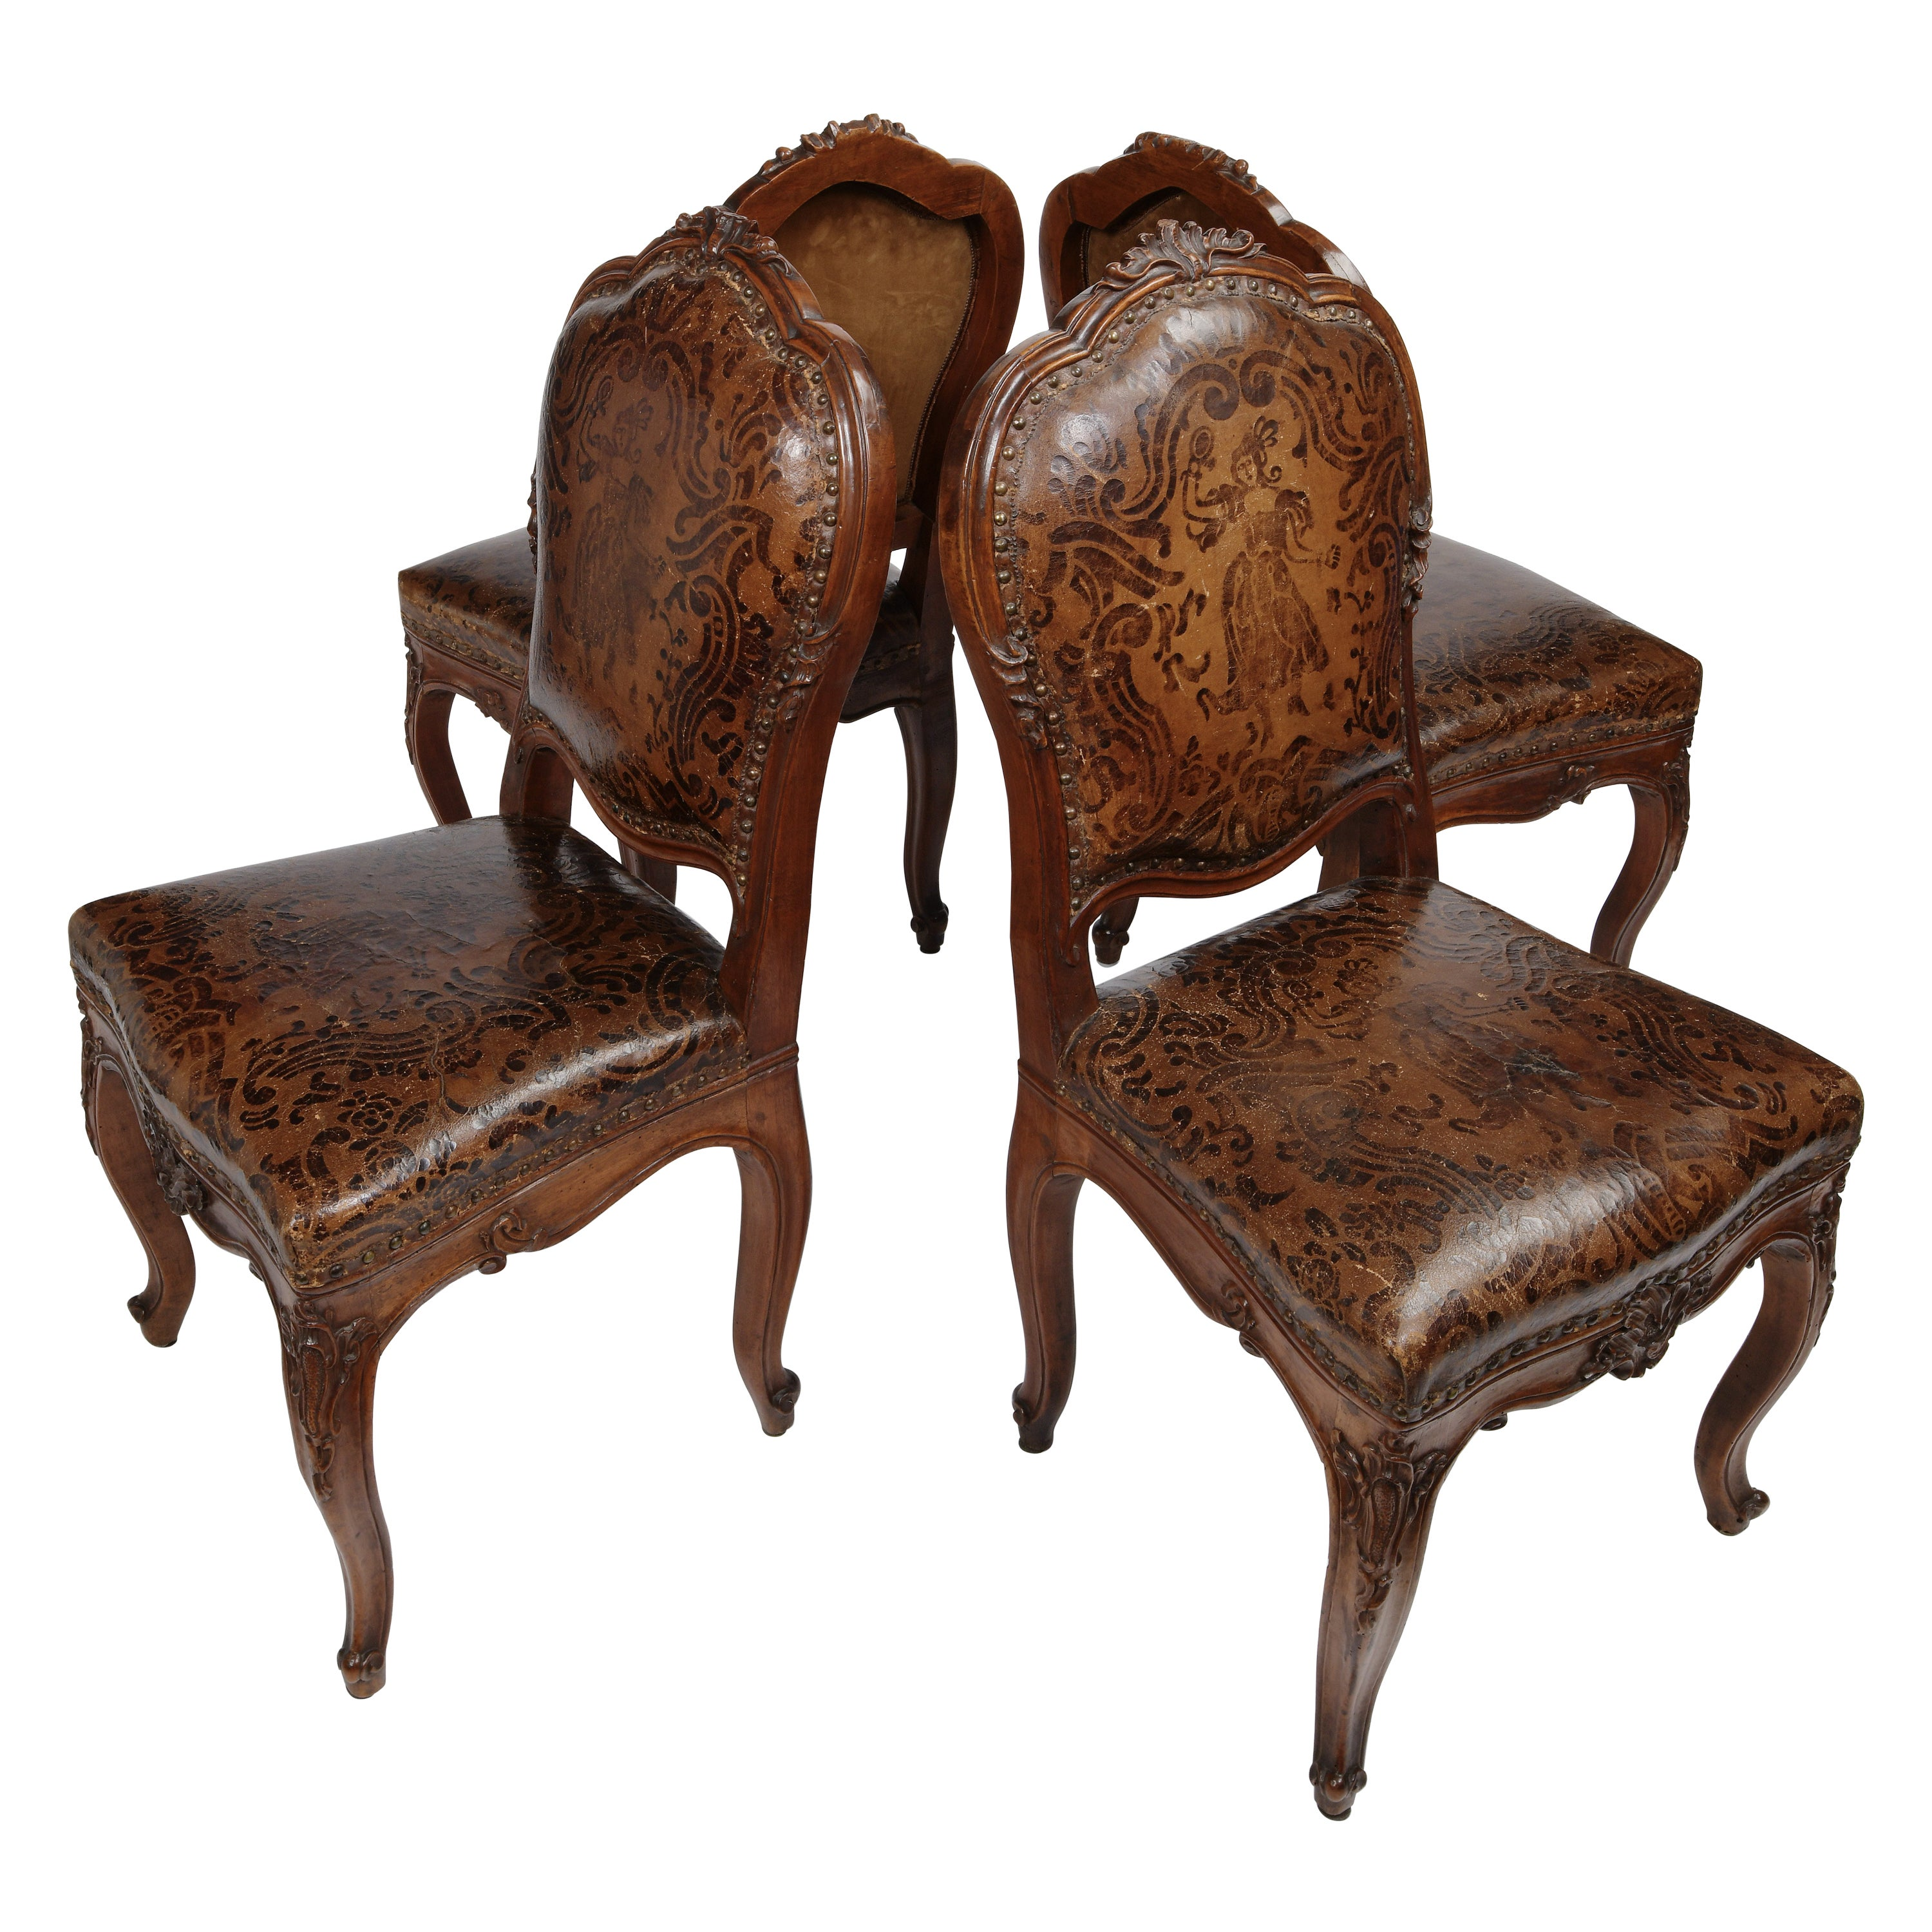 Italian Carved Walnut Chairs with Leather Covers, Milan, circa 1750